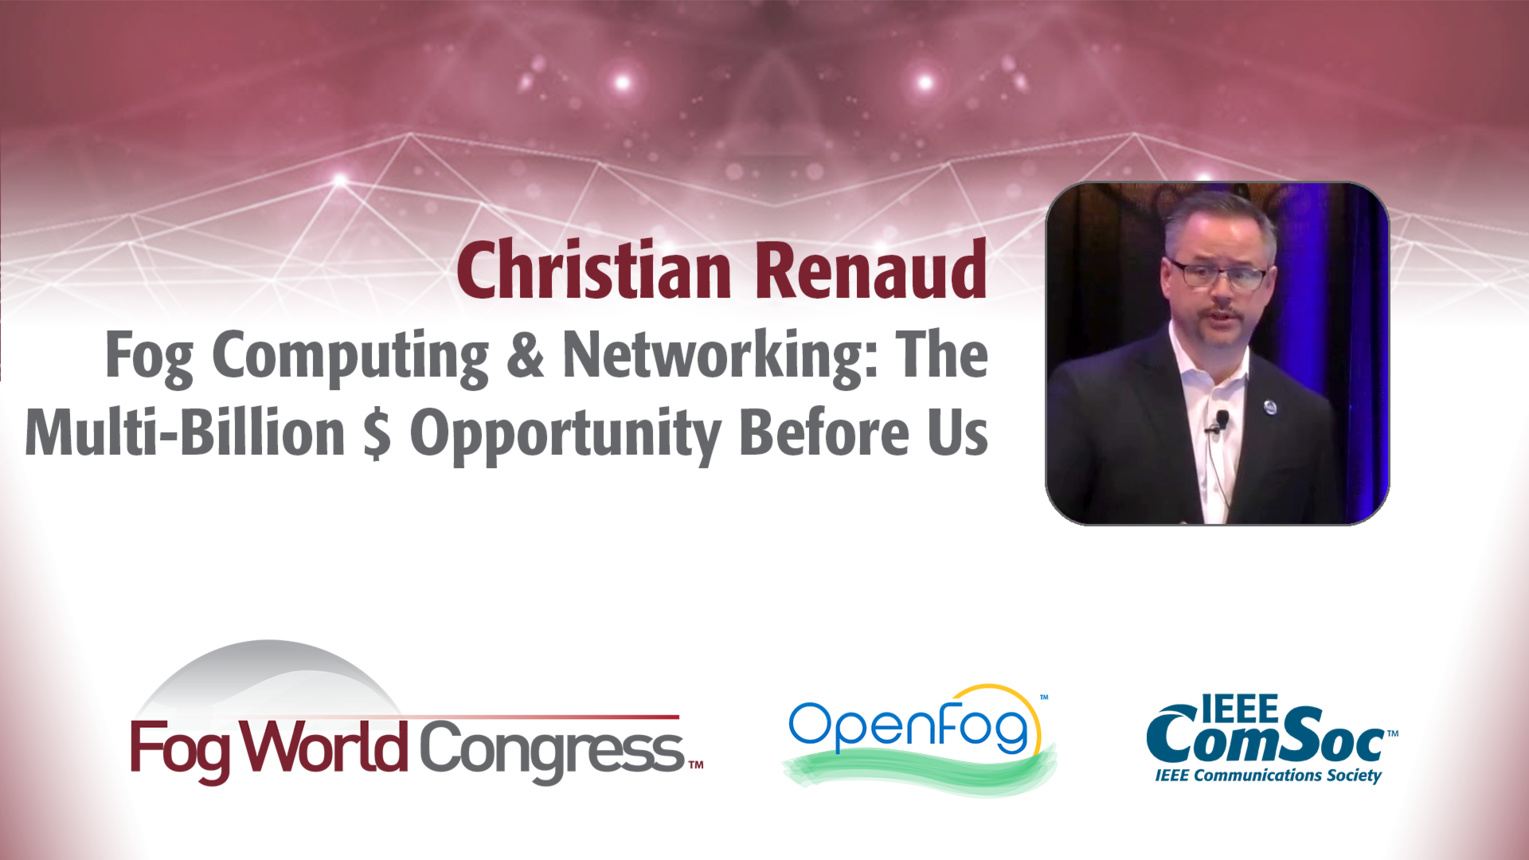 Fog Computing & Networking: The Multi-Billion $ Opportunity Before Us - Christian Renaud, Fog World Congress 2017